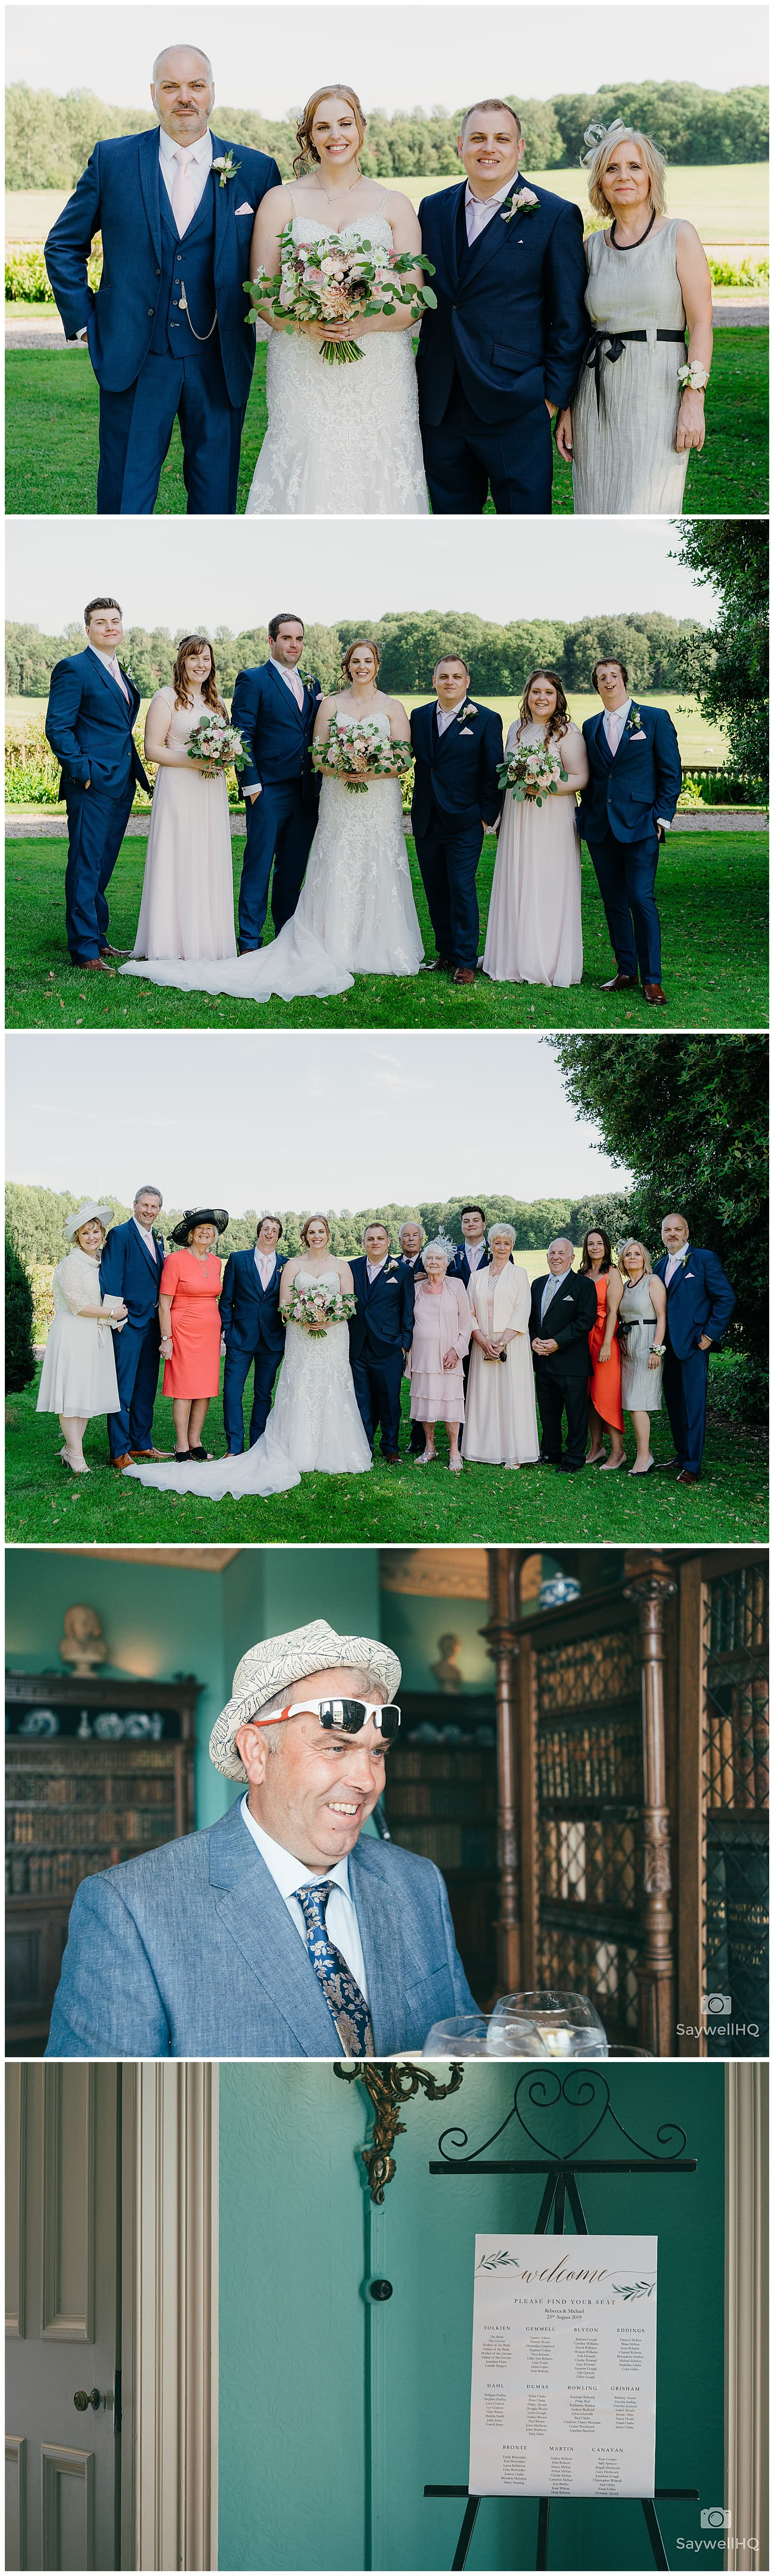 Wedding Photography at Prestwold Hall – guests find their seats for the wedding speeches at Prestwold Hall